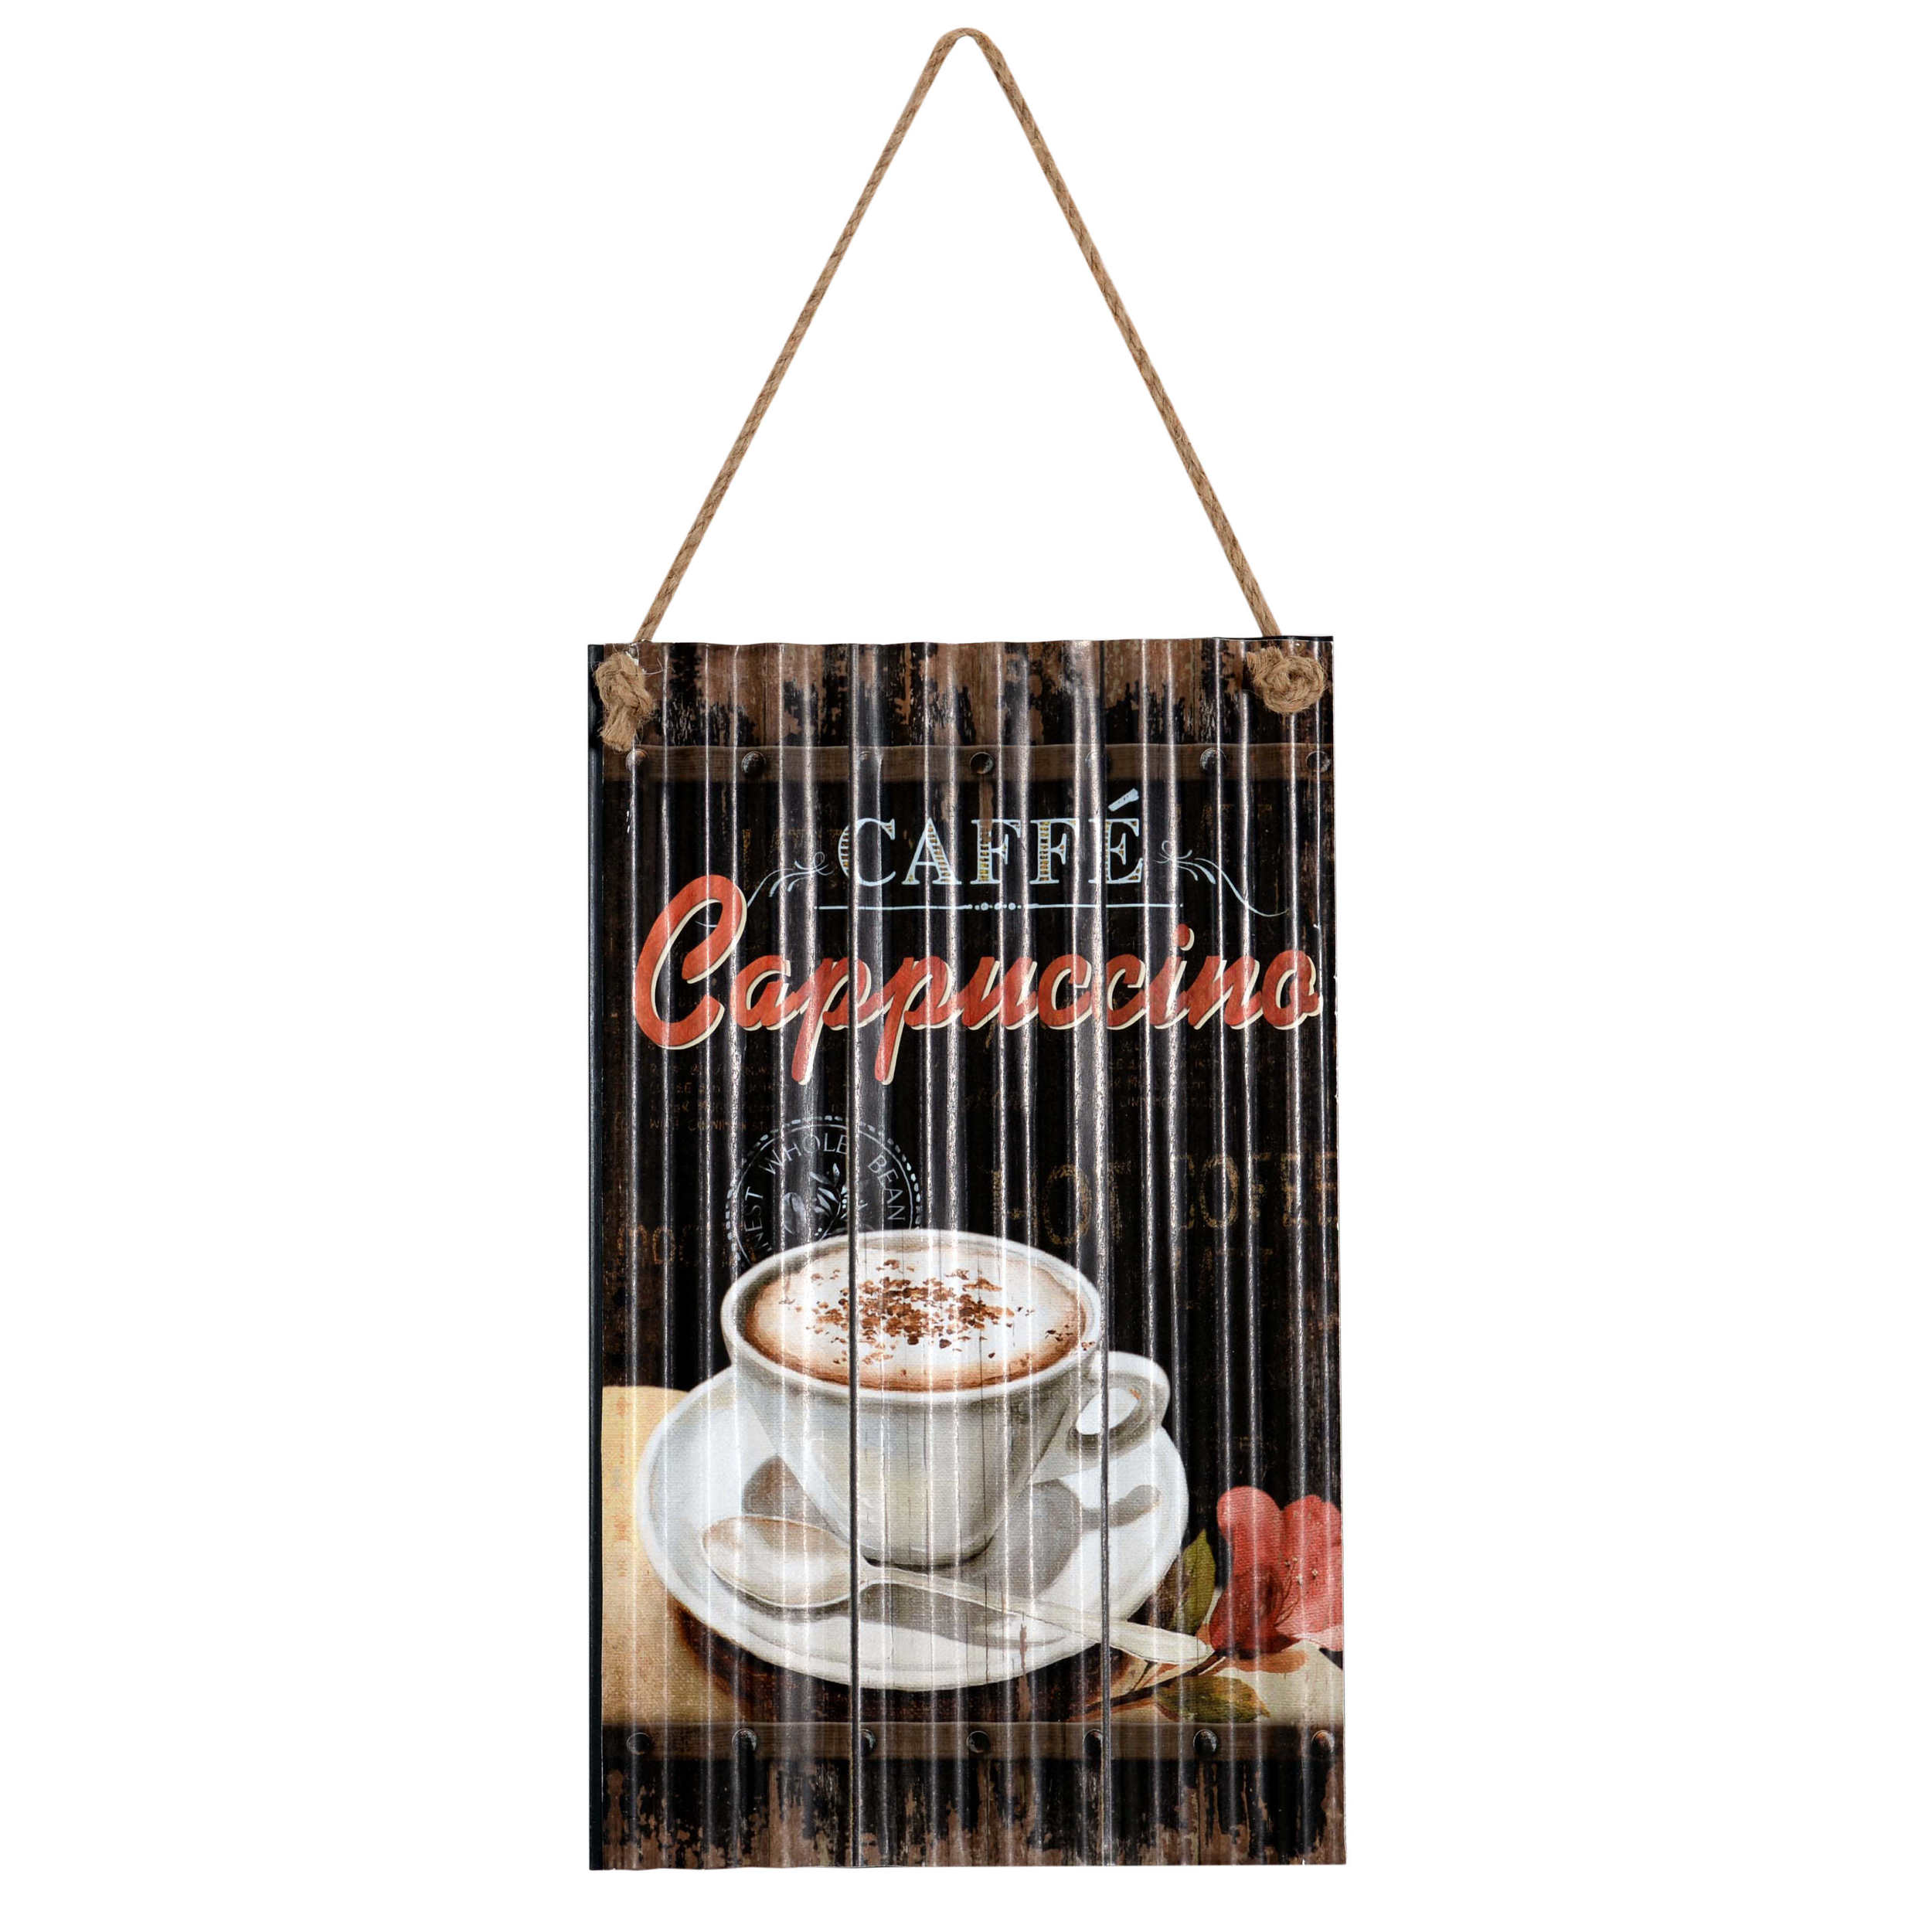 €12 METAL WALL PAINTING 'CAPPUCCINO' BROWN 23X1X38/58